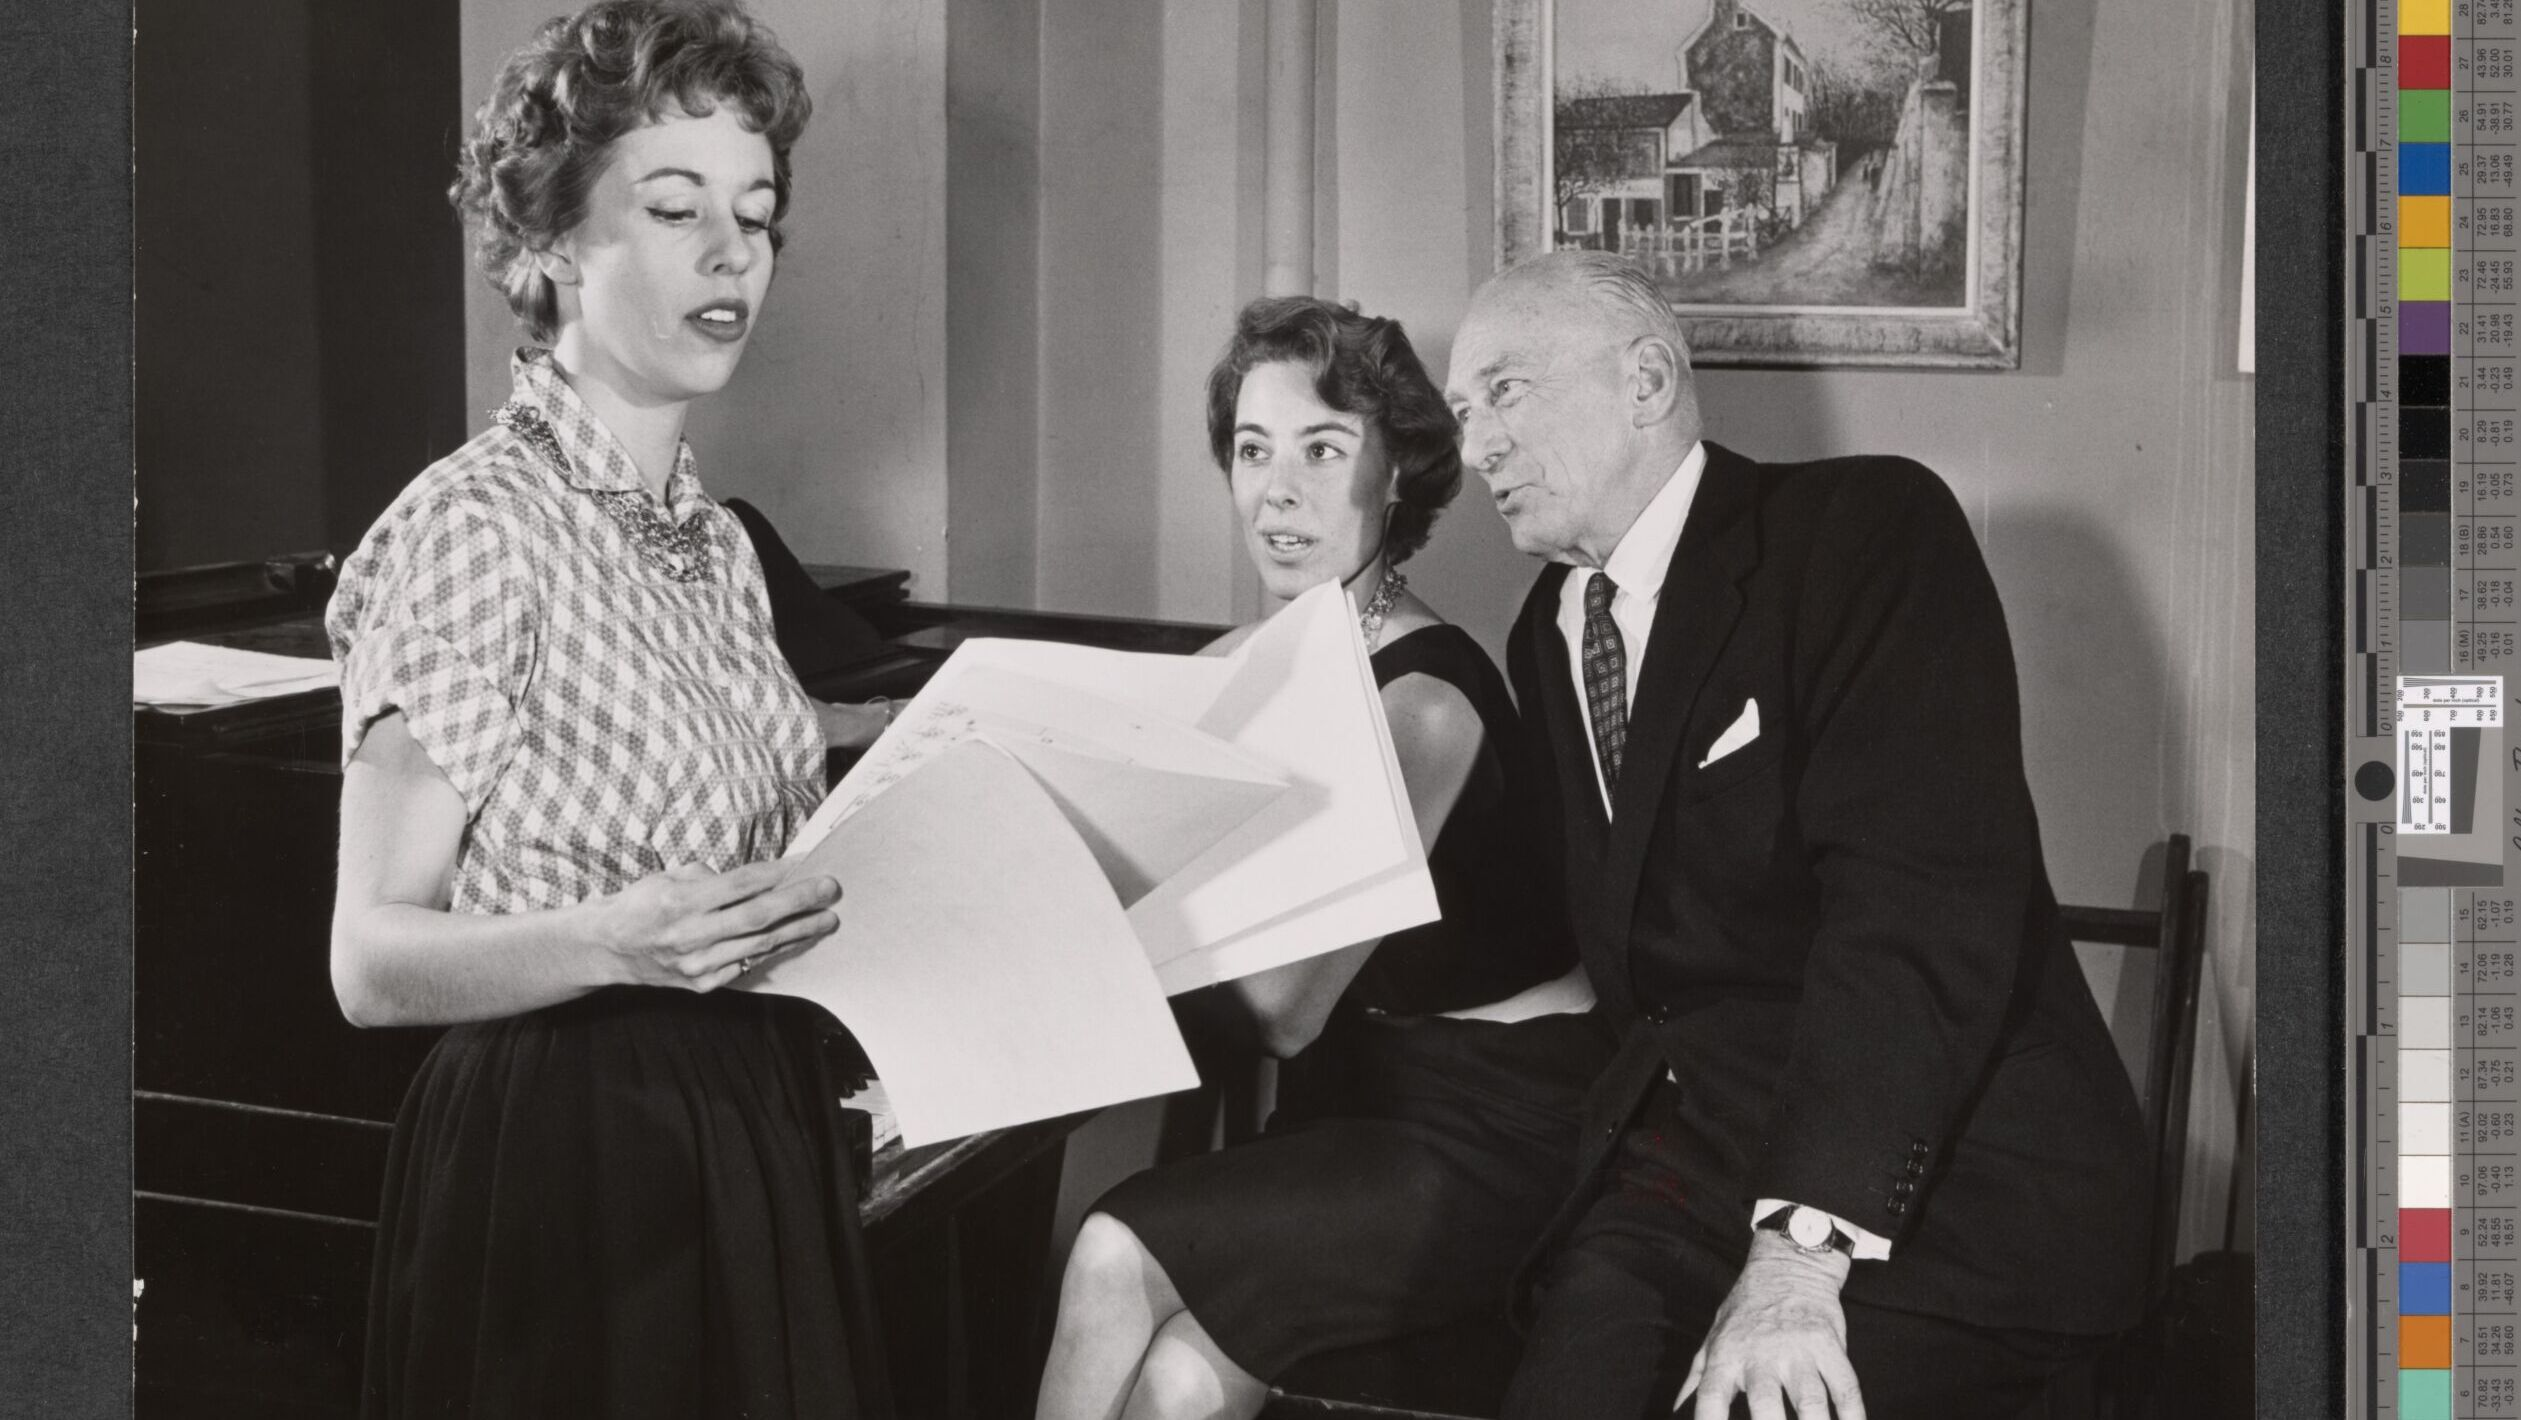 Black and white photo of two women and one man in suit, reading or singing from papers in rehearsal.